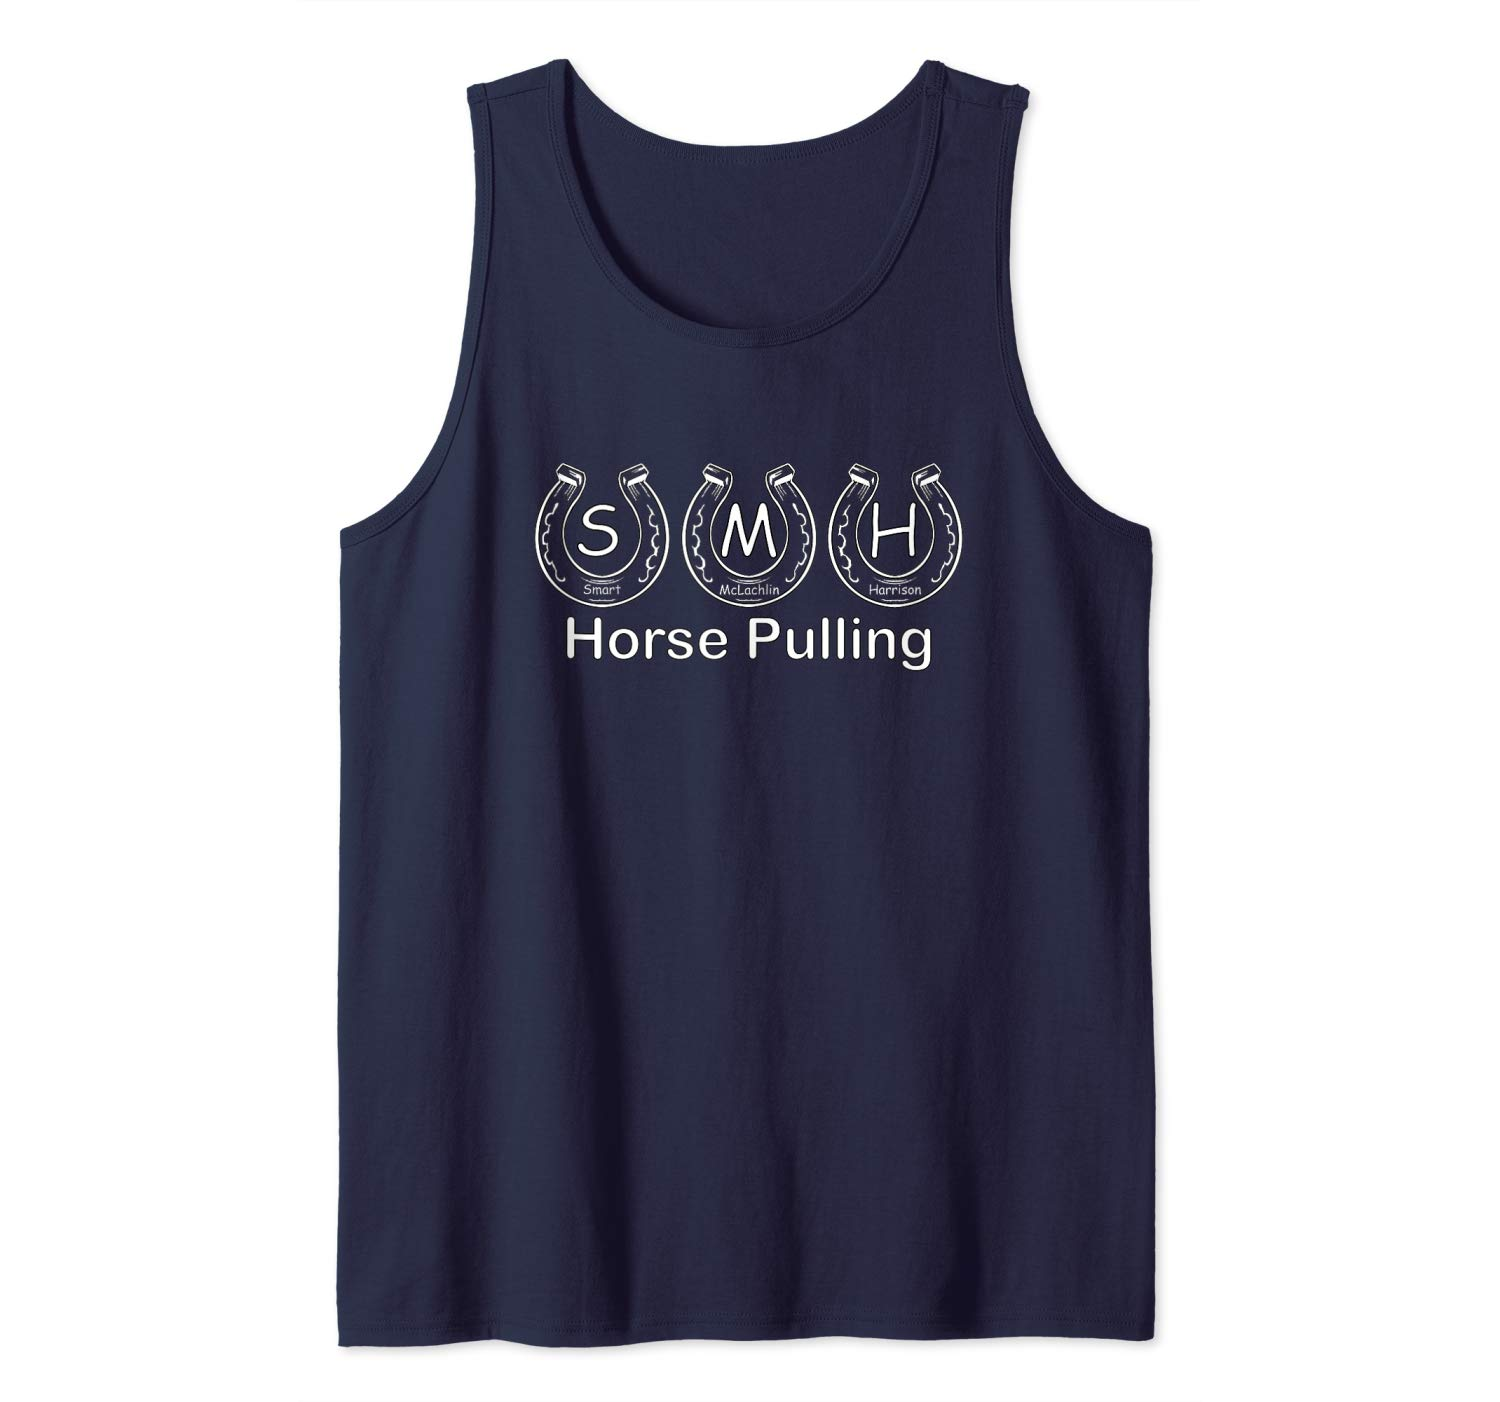 S.M.H. HORSE PULLING Tank Top